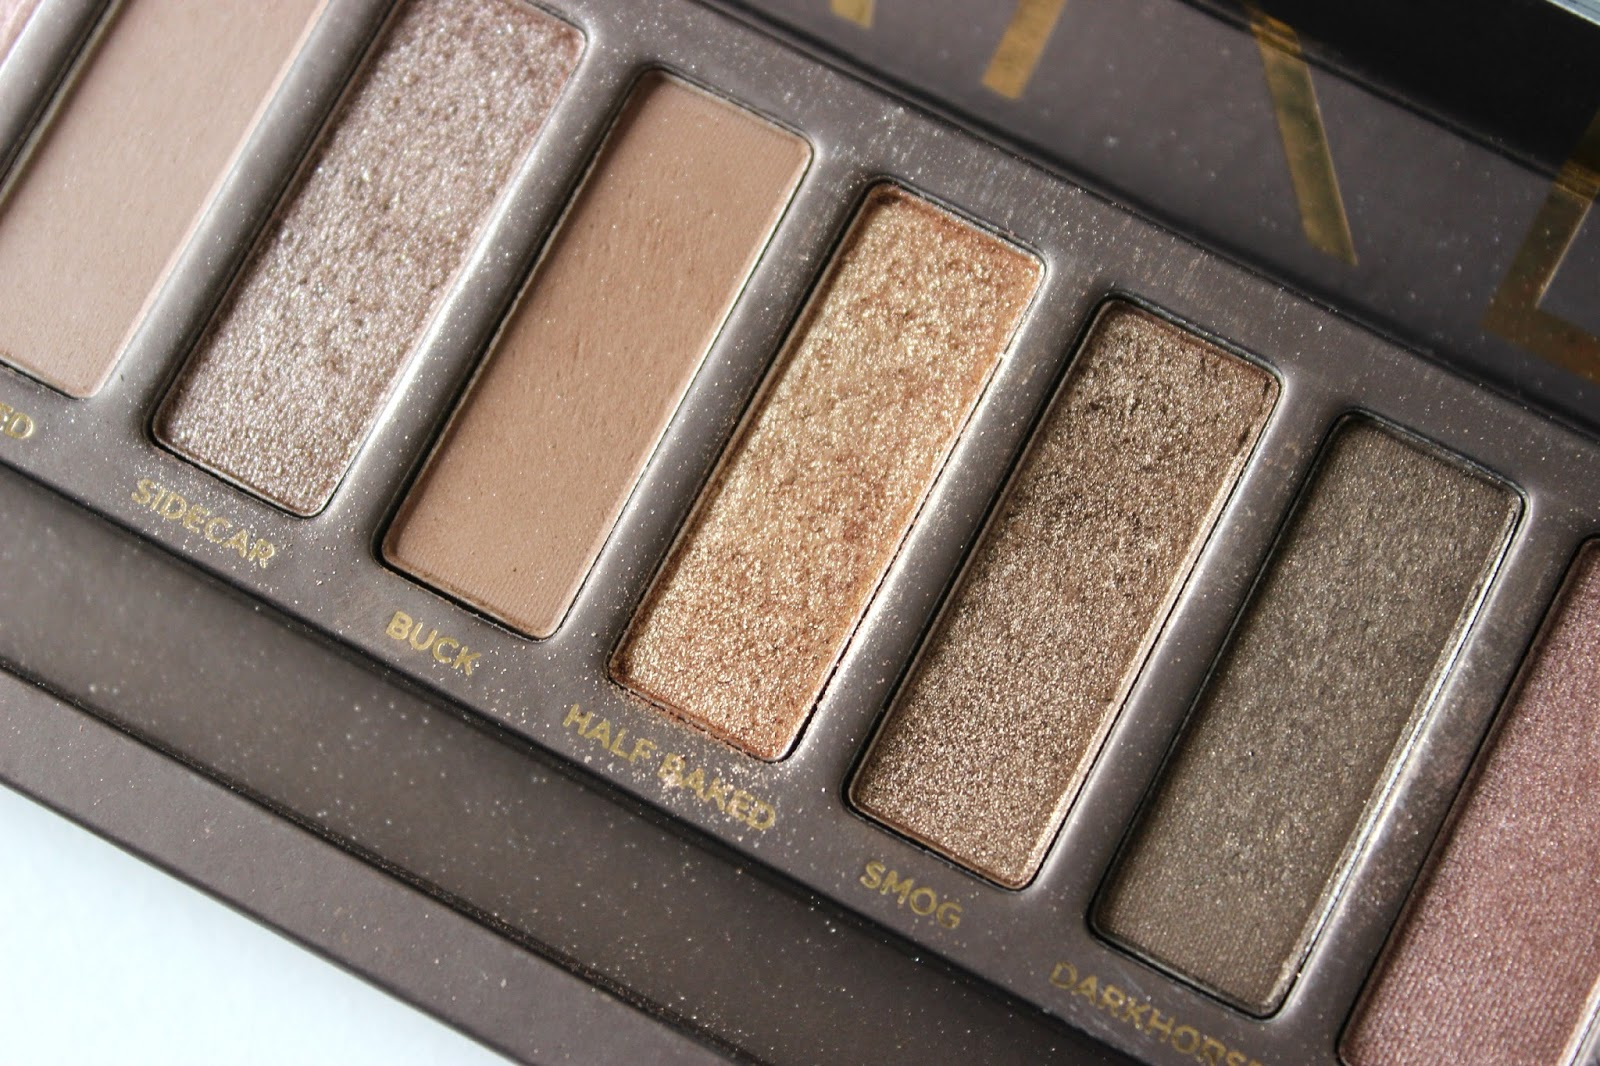 A picture of Urban Decay Naked Eyeshadow Palette